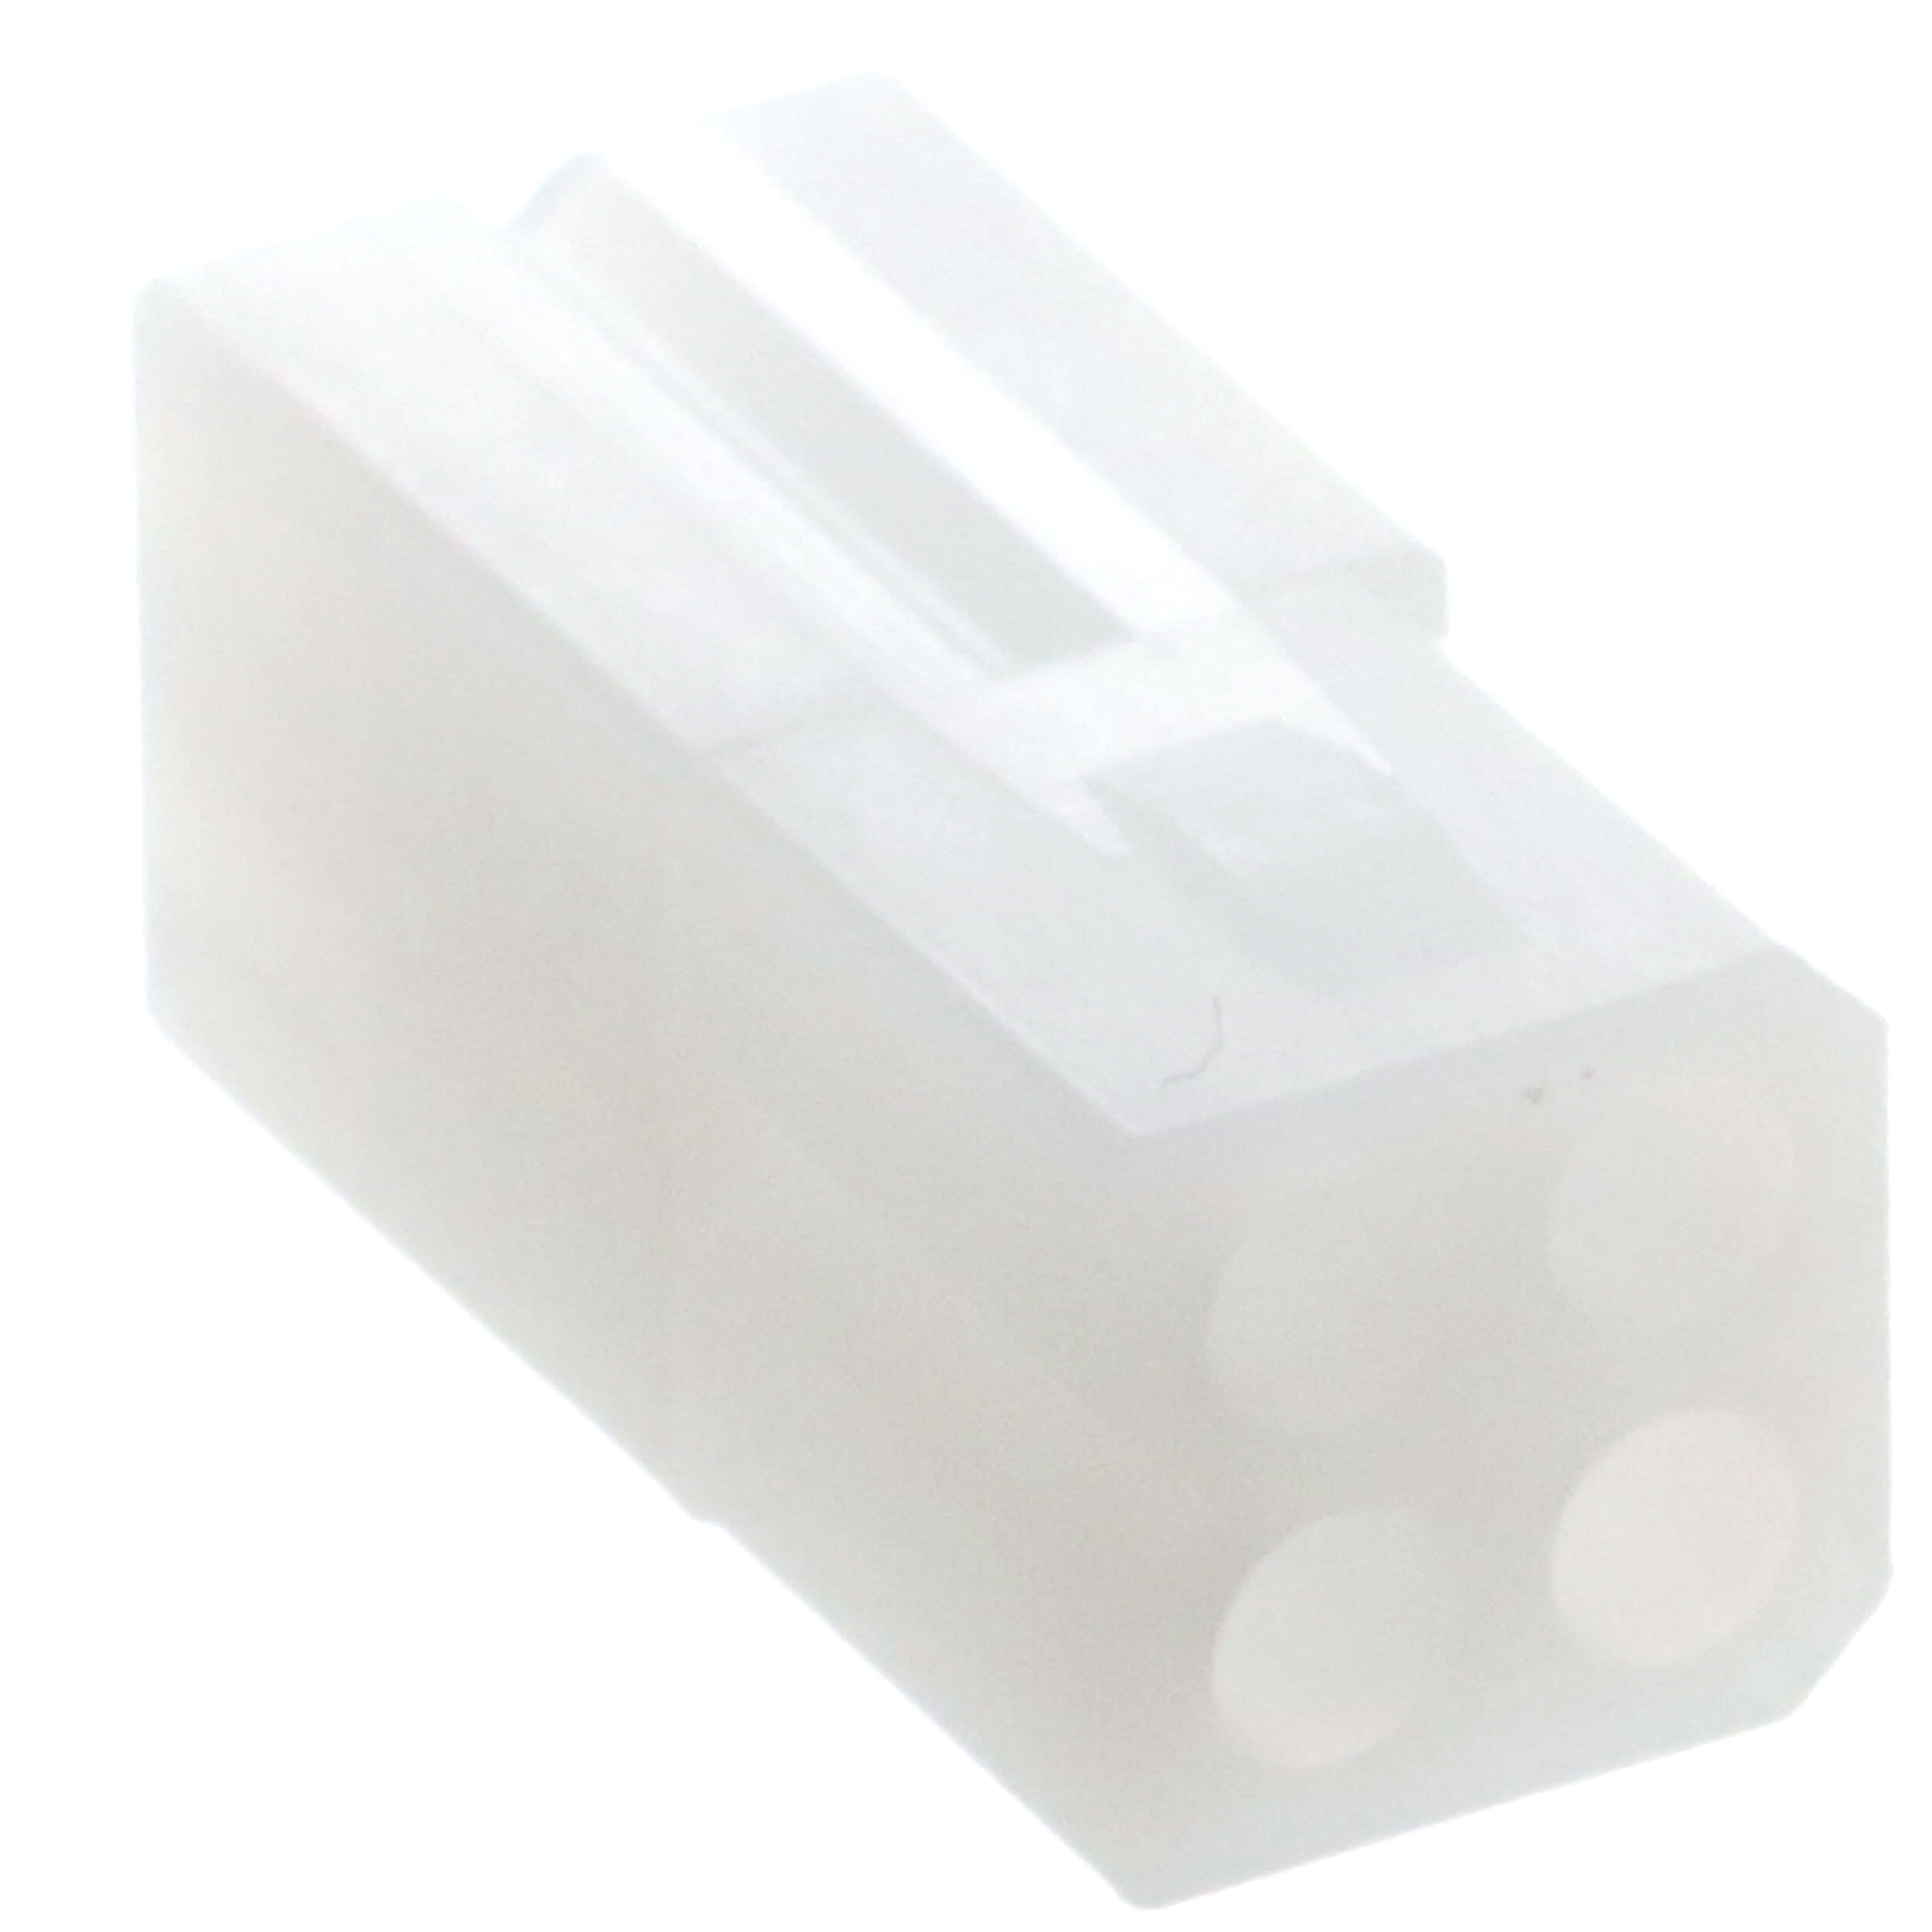 molex incorporated 03 06 1044 062 power connector receptacle 12 Pin Electrical Connectors molex incorporated 03 06 1044